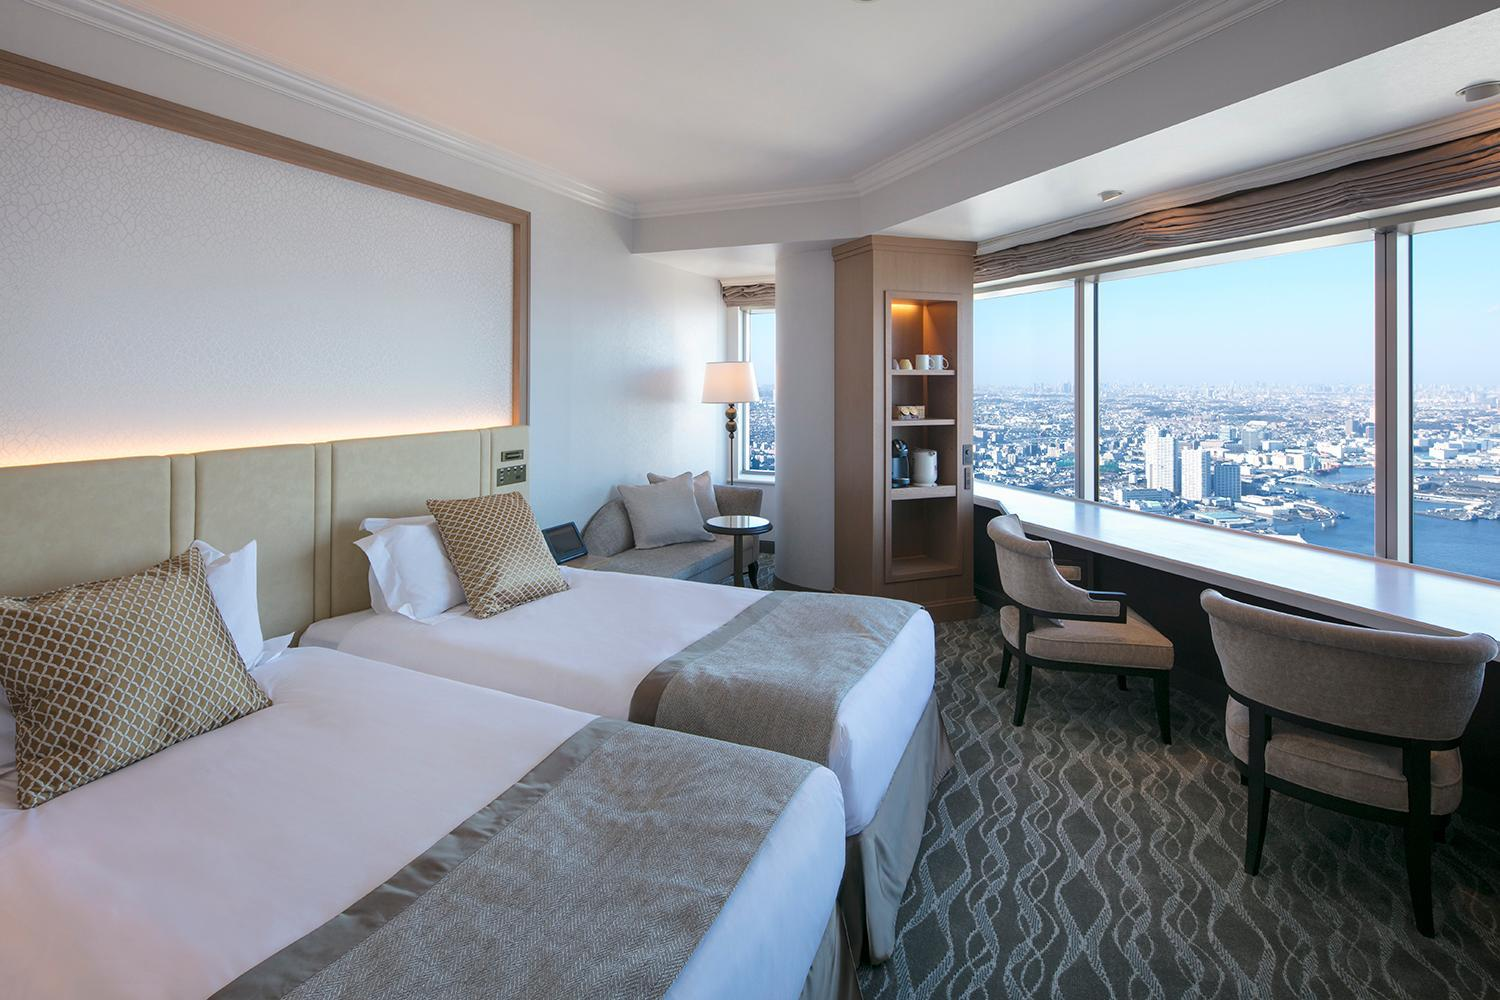 【全新裝潢】灣景客房(兩床/天空休養地樓層/邊間) - 禁菸 (Sky Resort Floor Corner Bay View Twin Room - Non-Smoking, Newly Renovated)